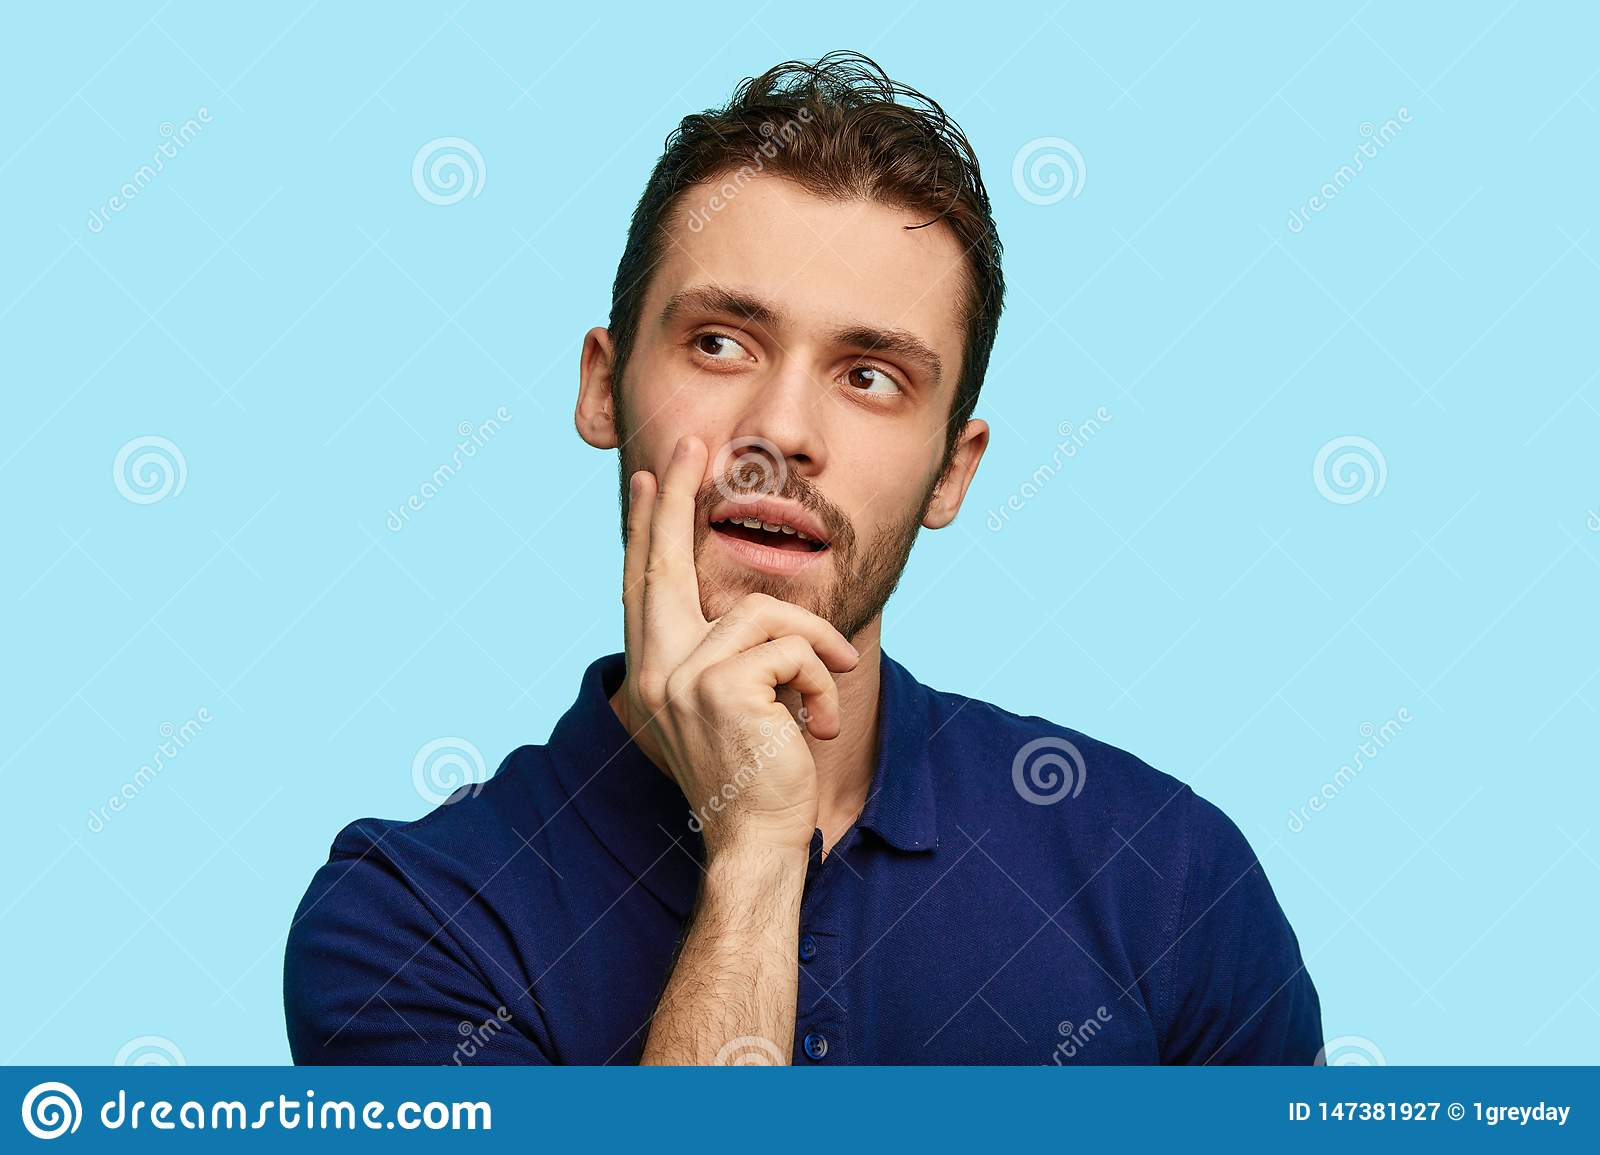 Thoughtful man standing with hand on chin and looking away isolated over blue background